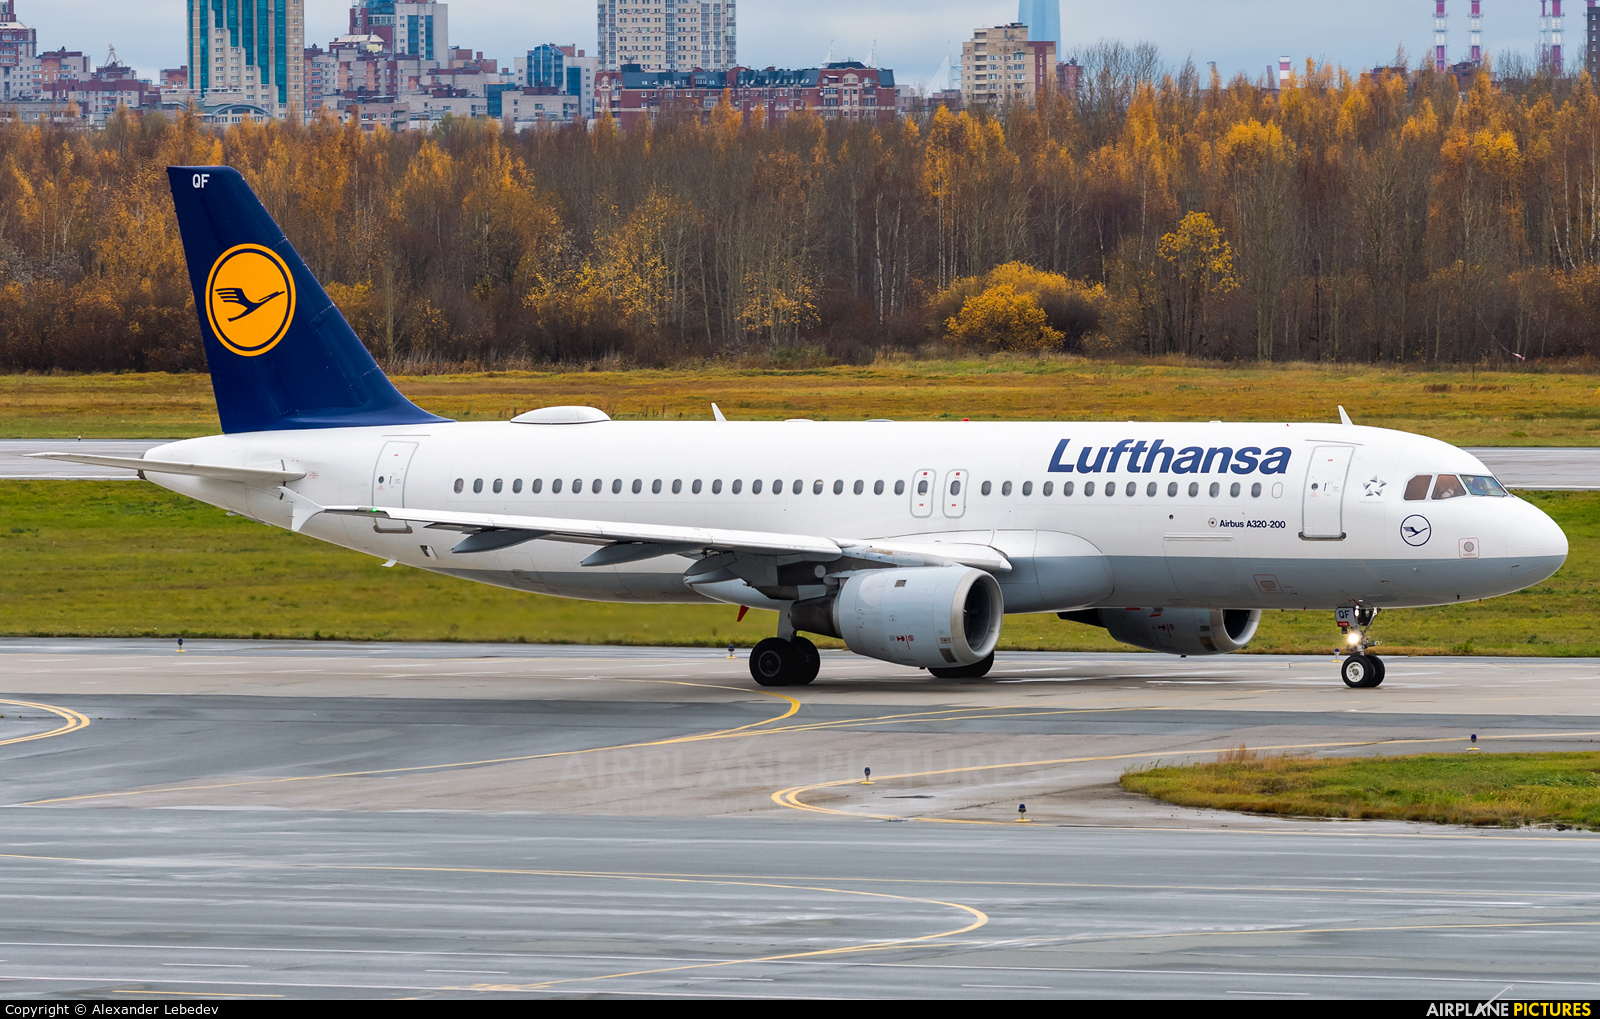 Lufthansa D-AIQF aircraft at St. Petersburg - Pulkovo